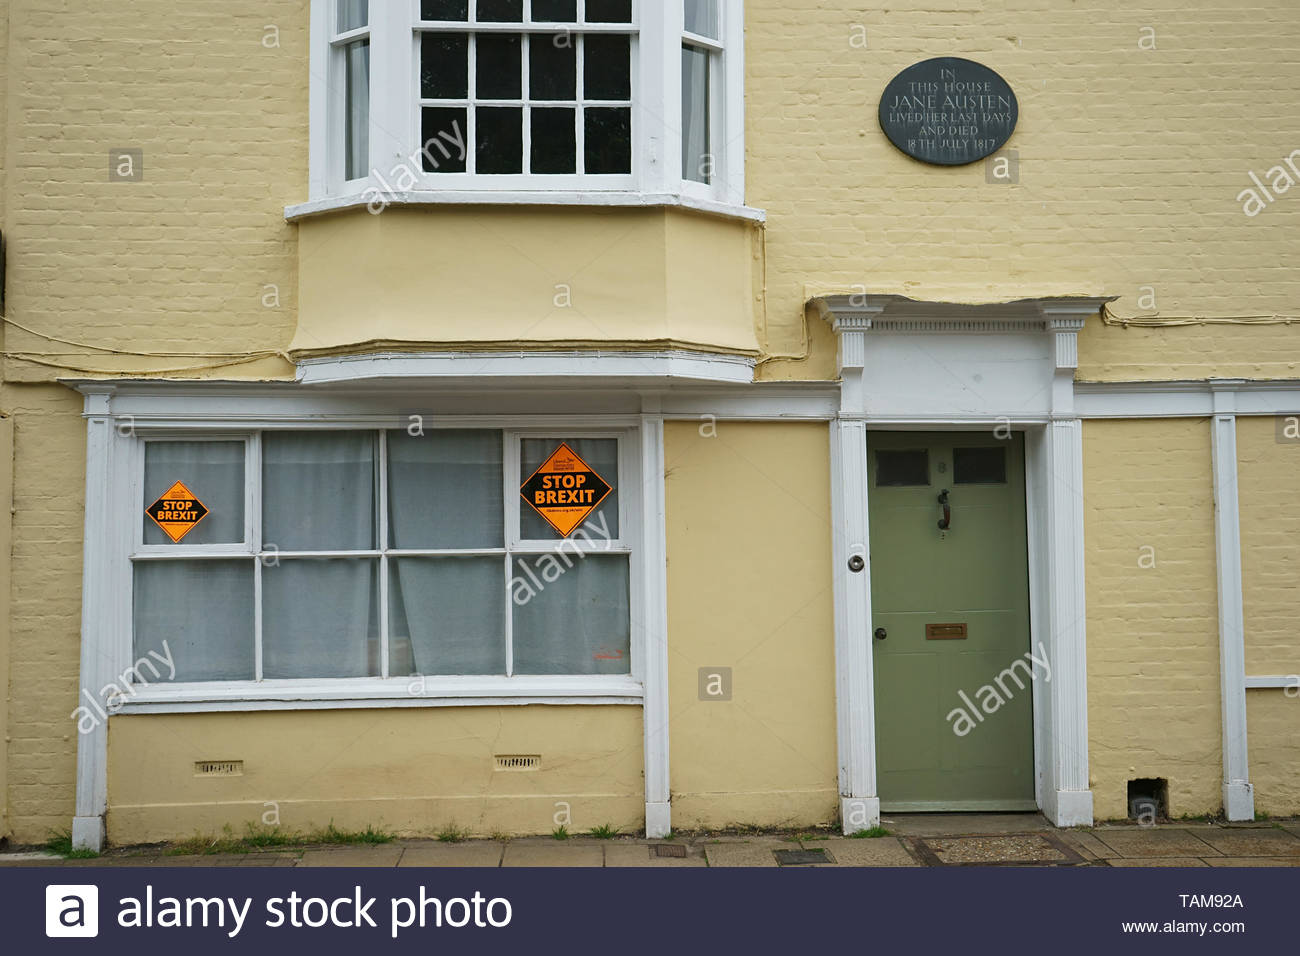 Winchester, Hampshire, UK. Stop Brexit poster on outside house in which Jane Austen lived her last days and died - 18 may 2019 Stock Photo